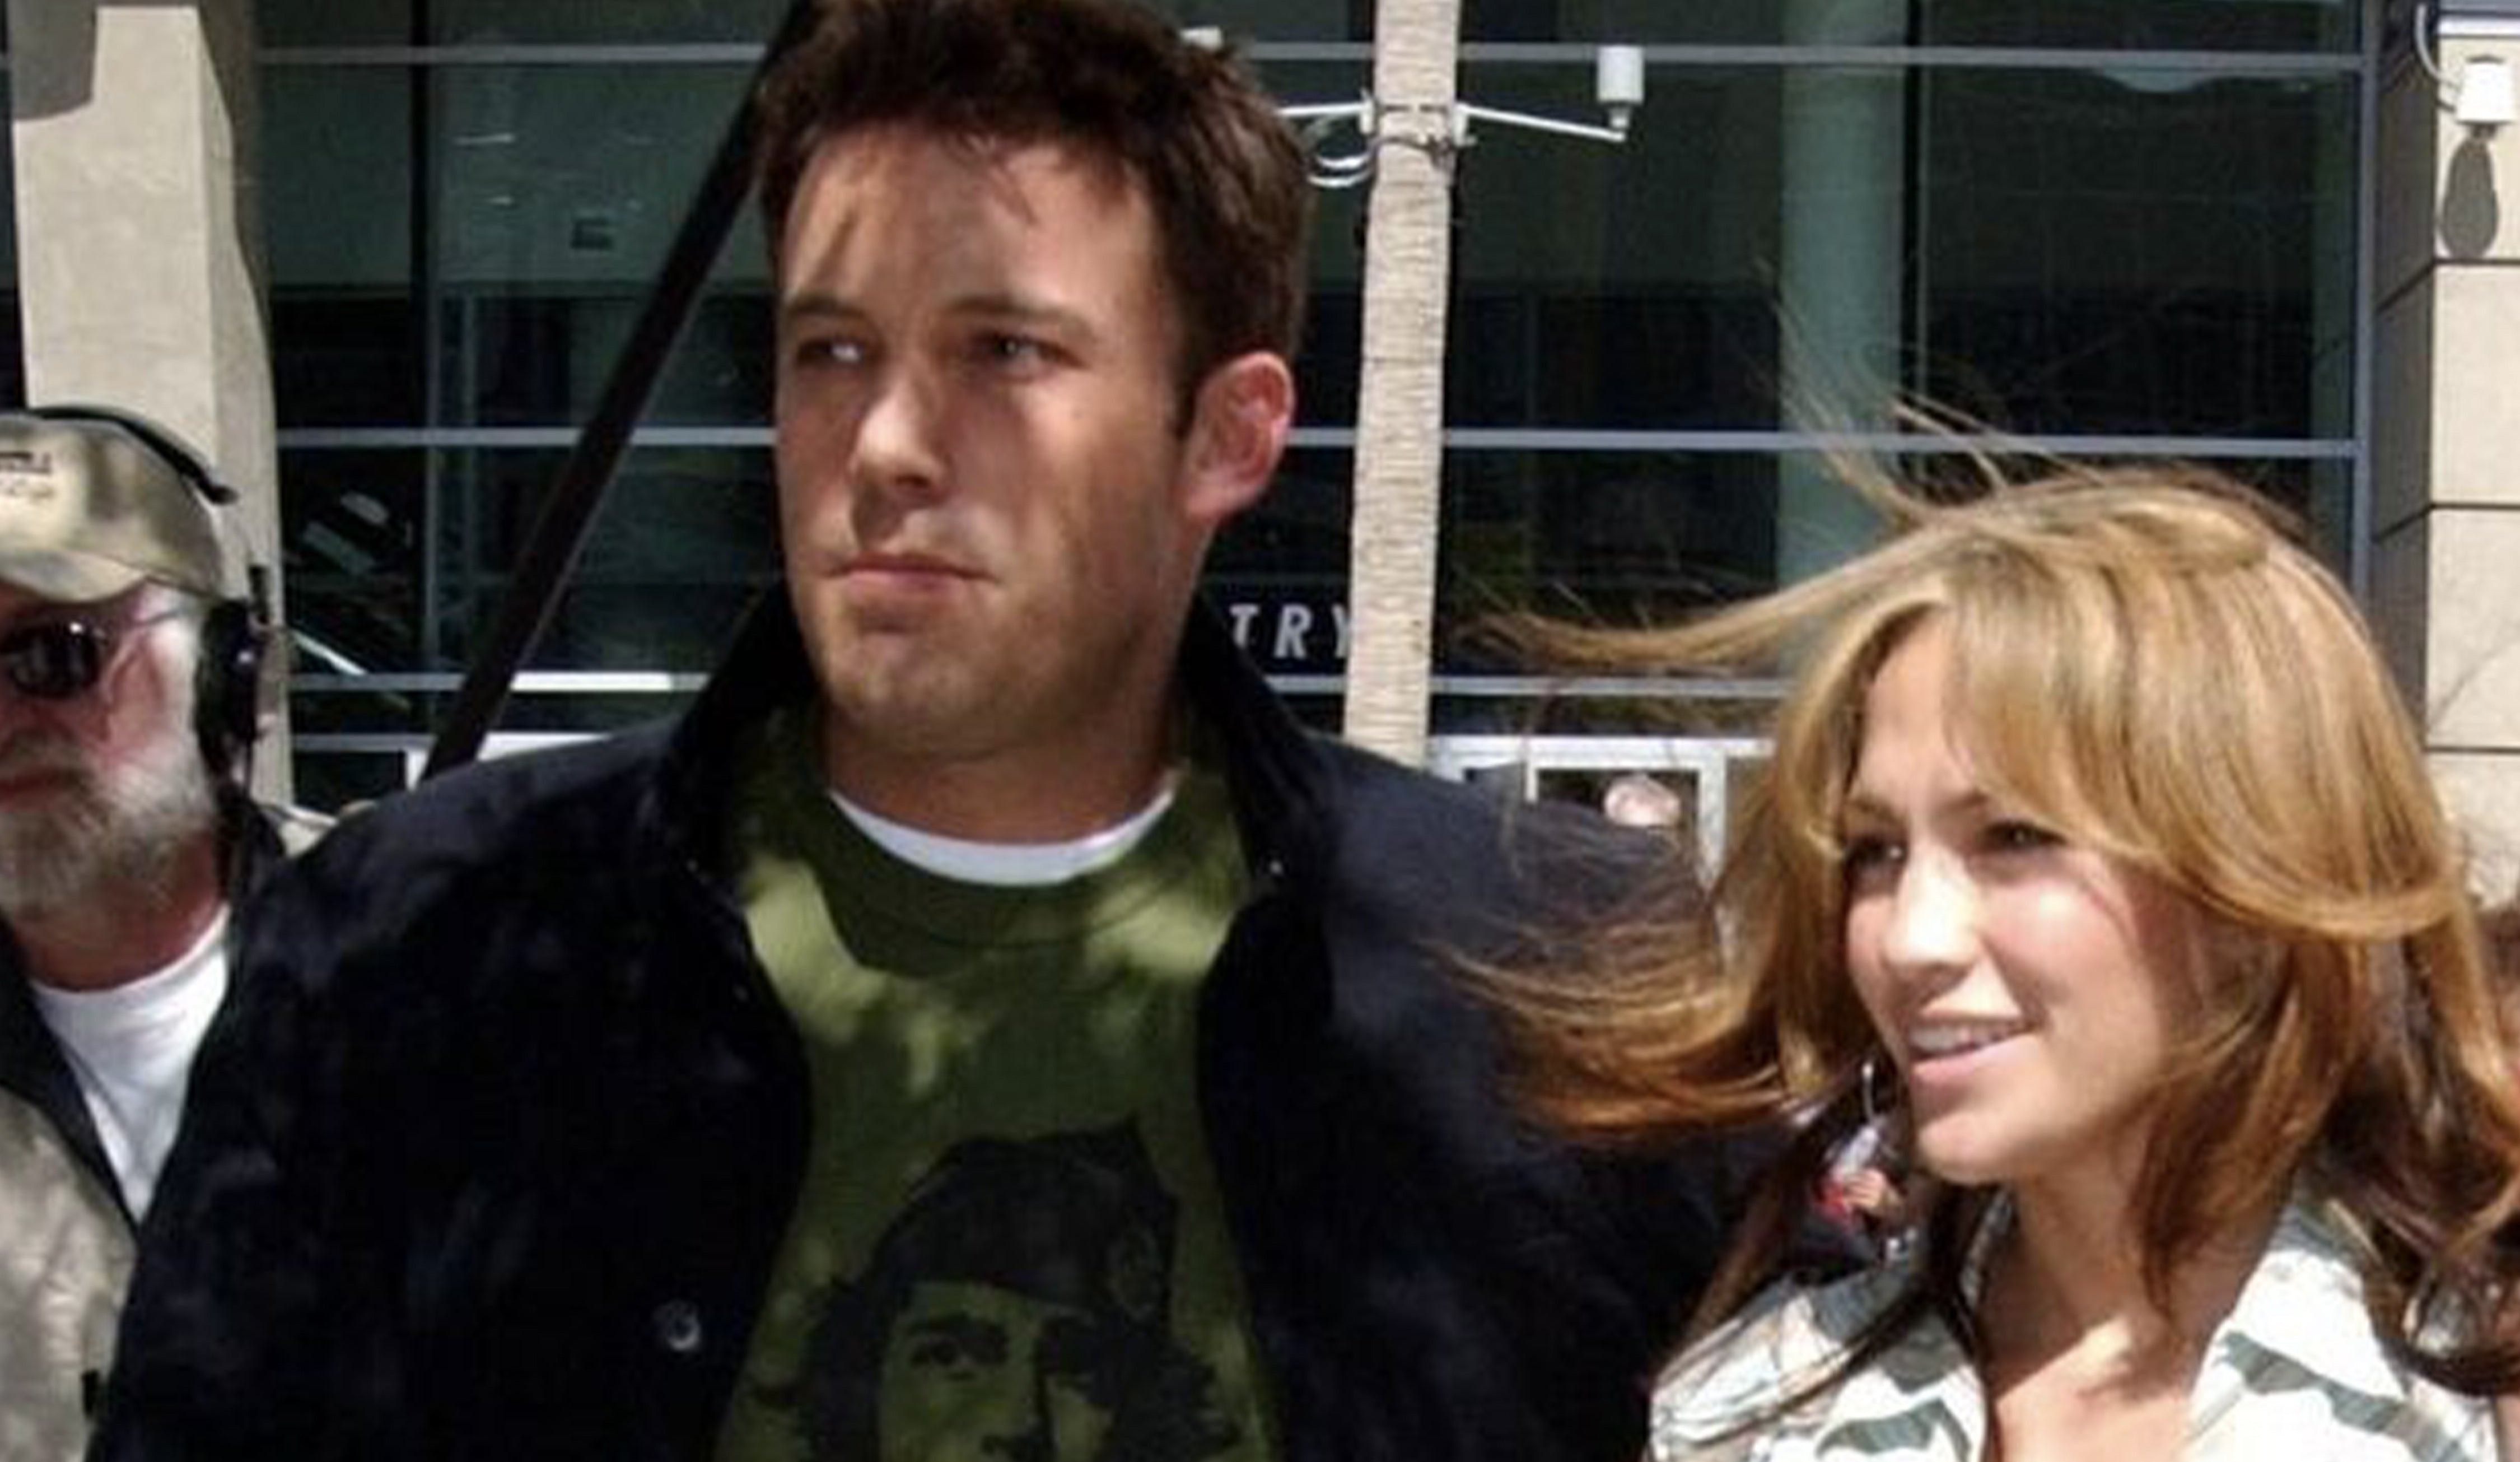 More in love than ever: Ben Affleck and Jennifer Lopez photographed embracing | Net Worth Space